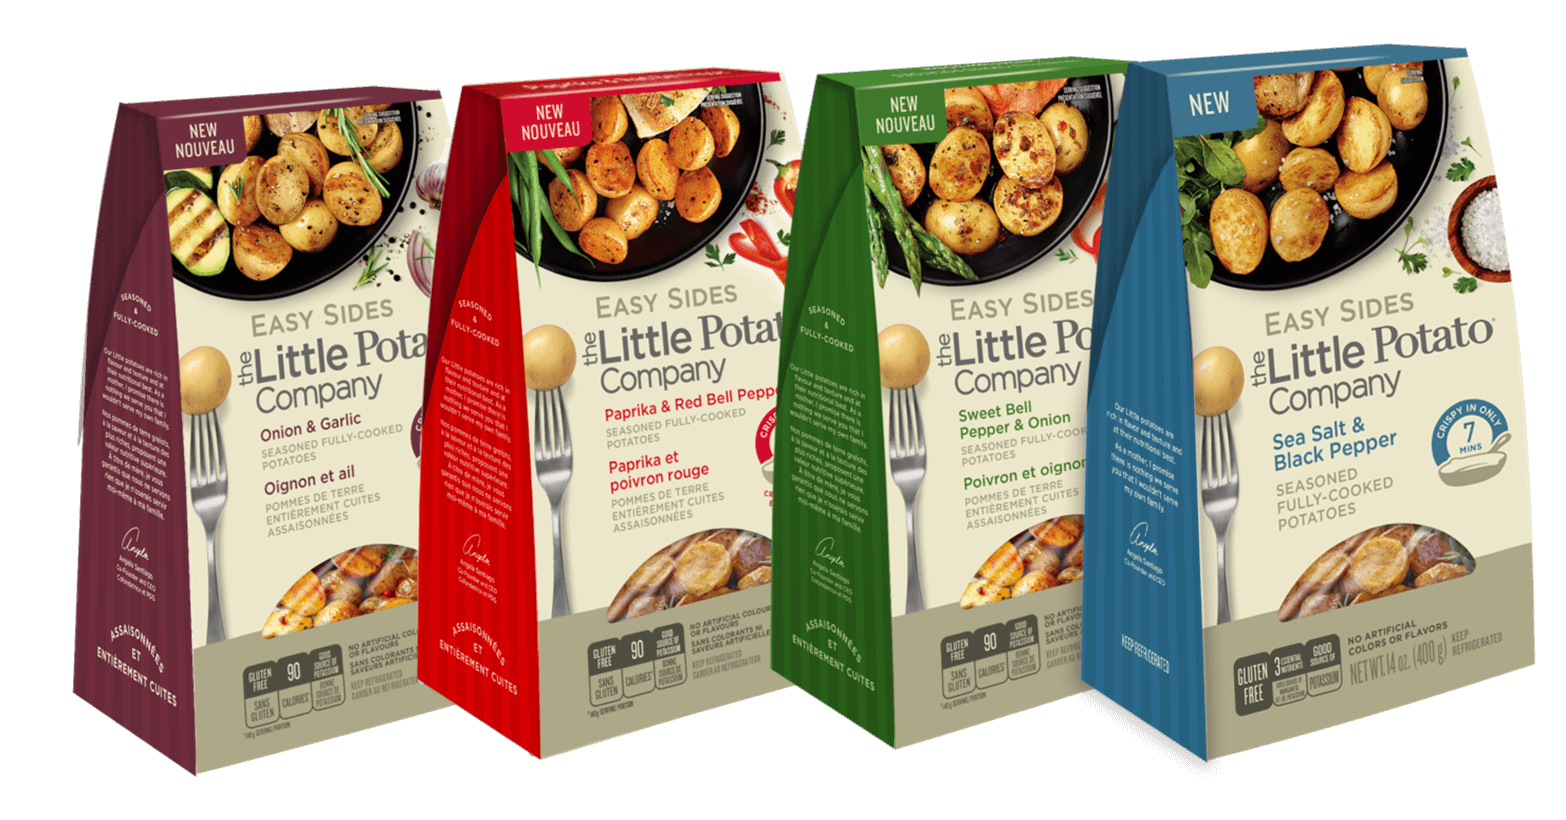 Fast, Fresh, and Flavorful: Two NEW Mealtime Solutions From The Little Potato Company